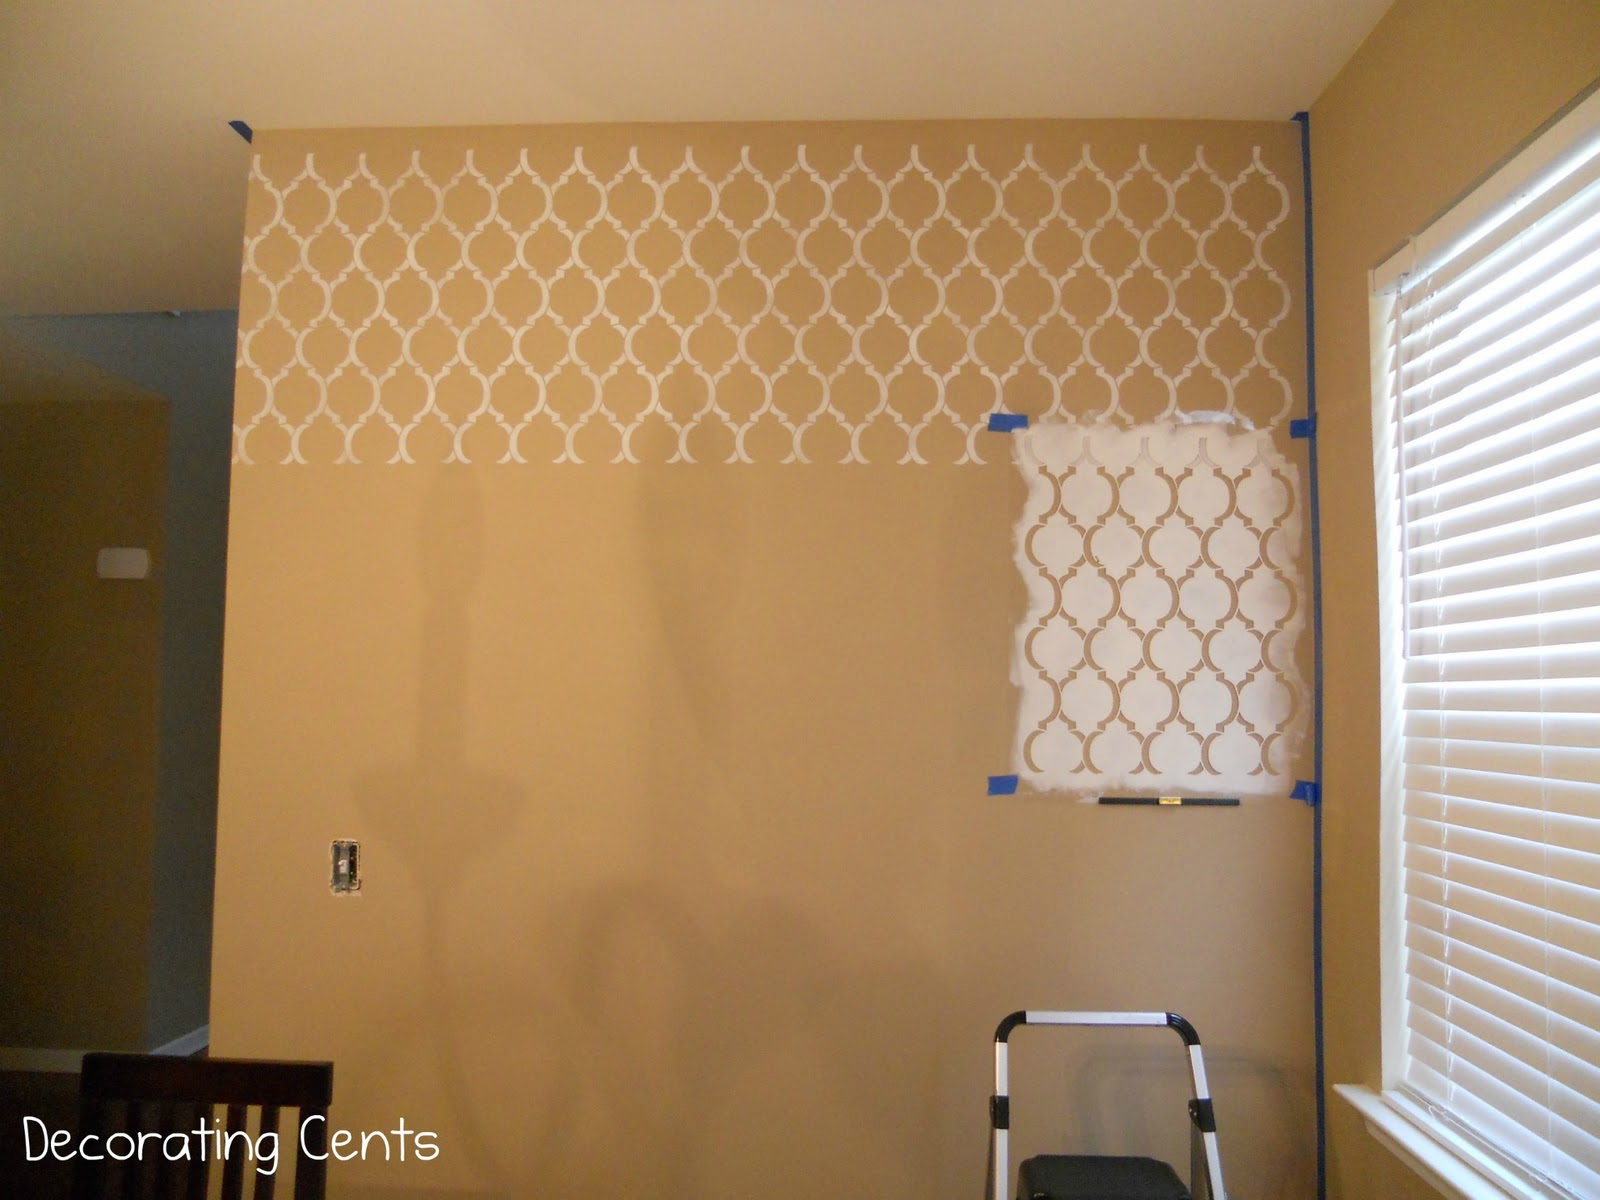 Simple Wall Designs Stencils Decorating Cents A Stenciled Wall